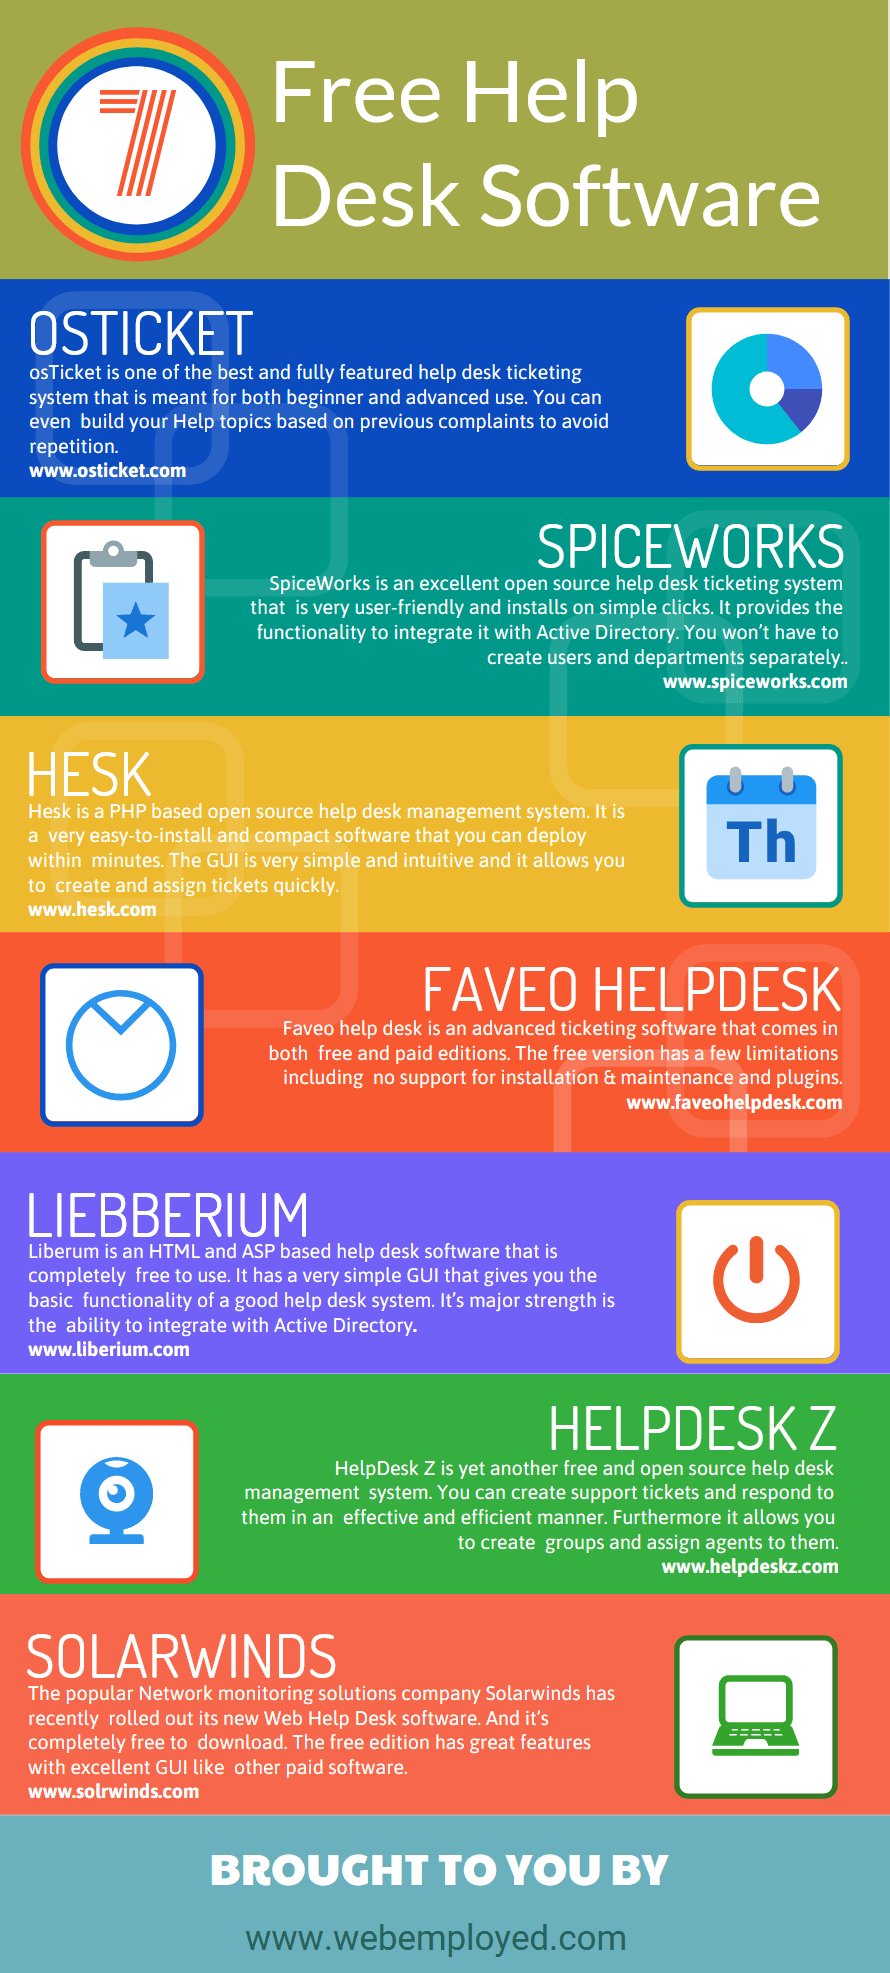 6 Free Help Desk Software For Automating It Support